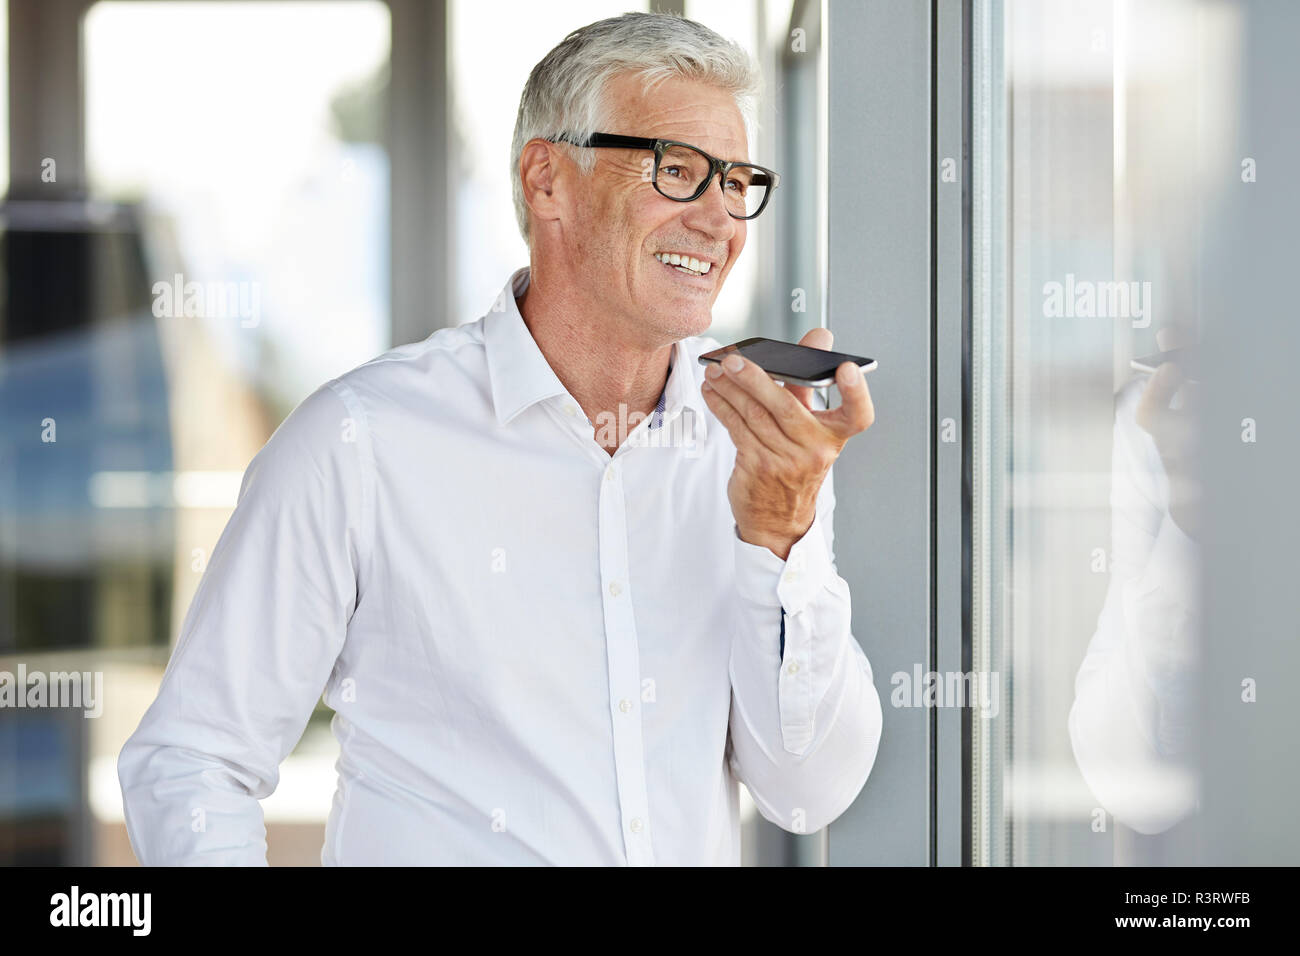 Successful businessman using smartphone, leaving voice mail - Stock Image